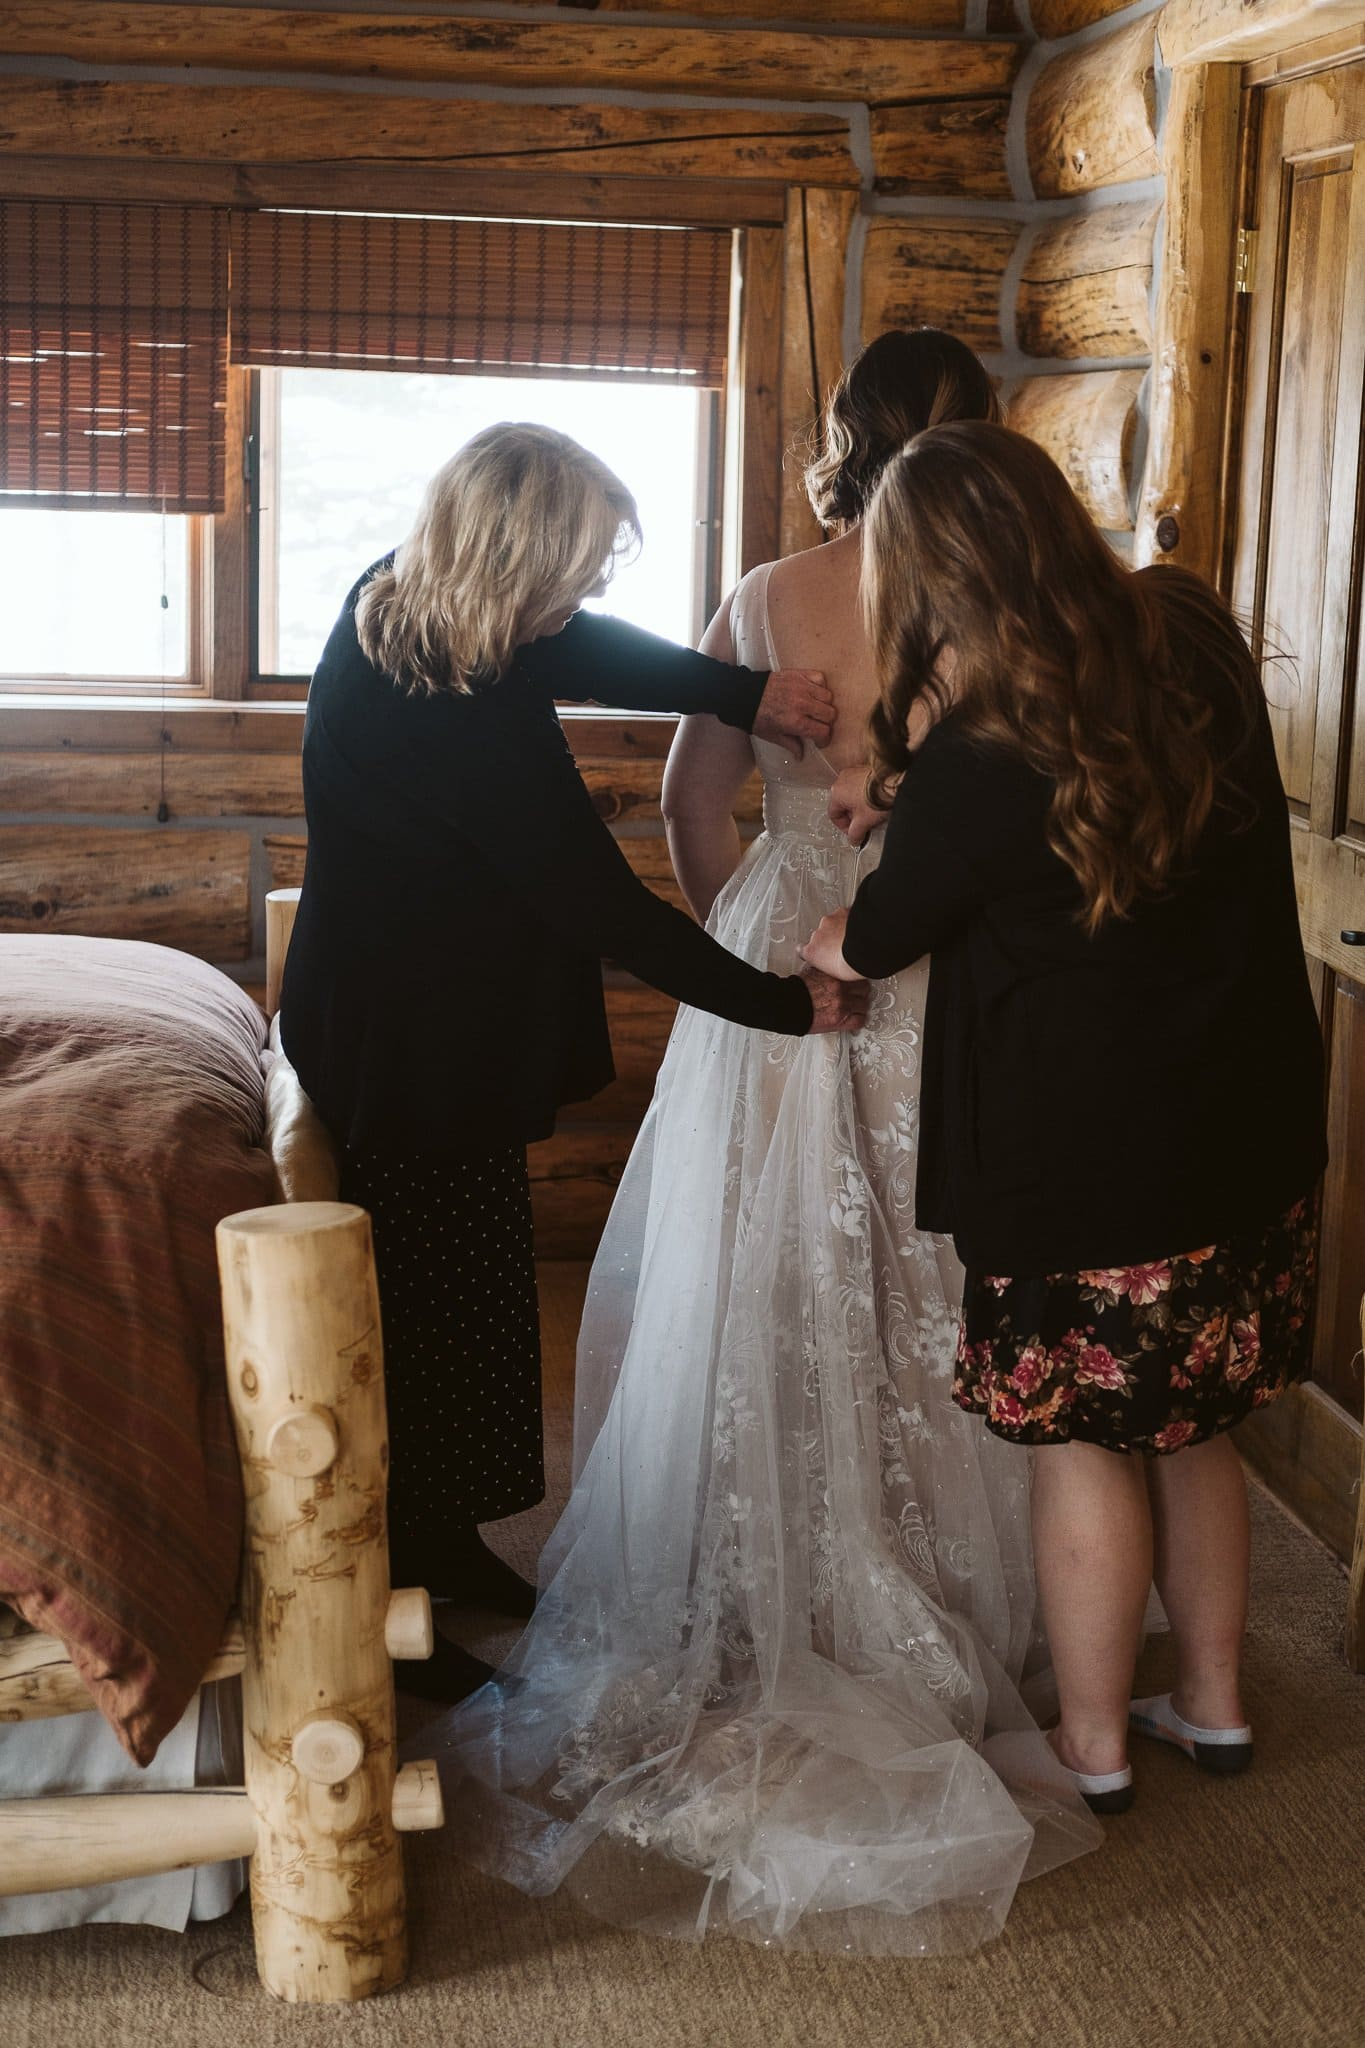 Bride's mother and sister helping her into wedding dress